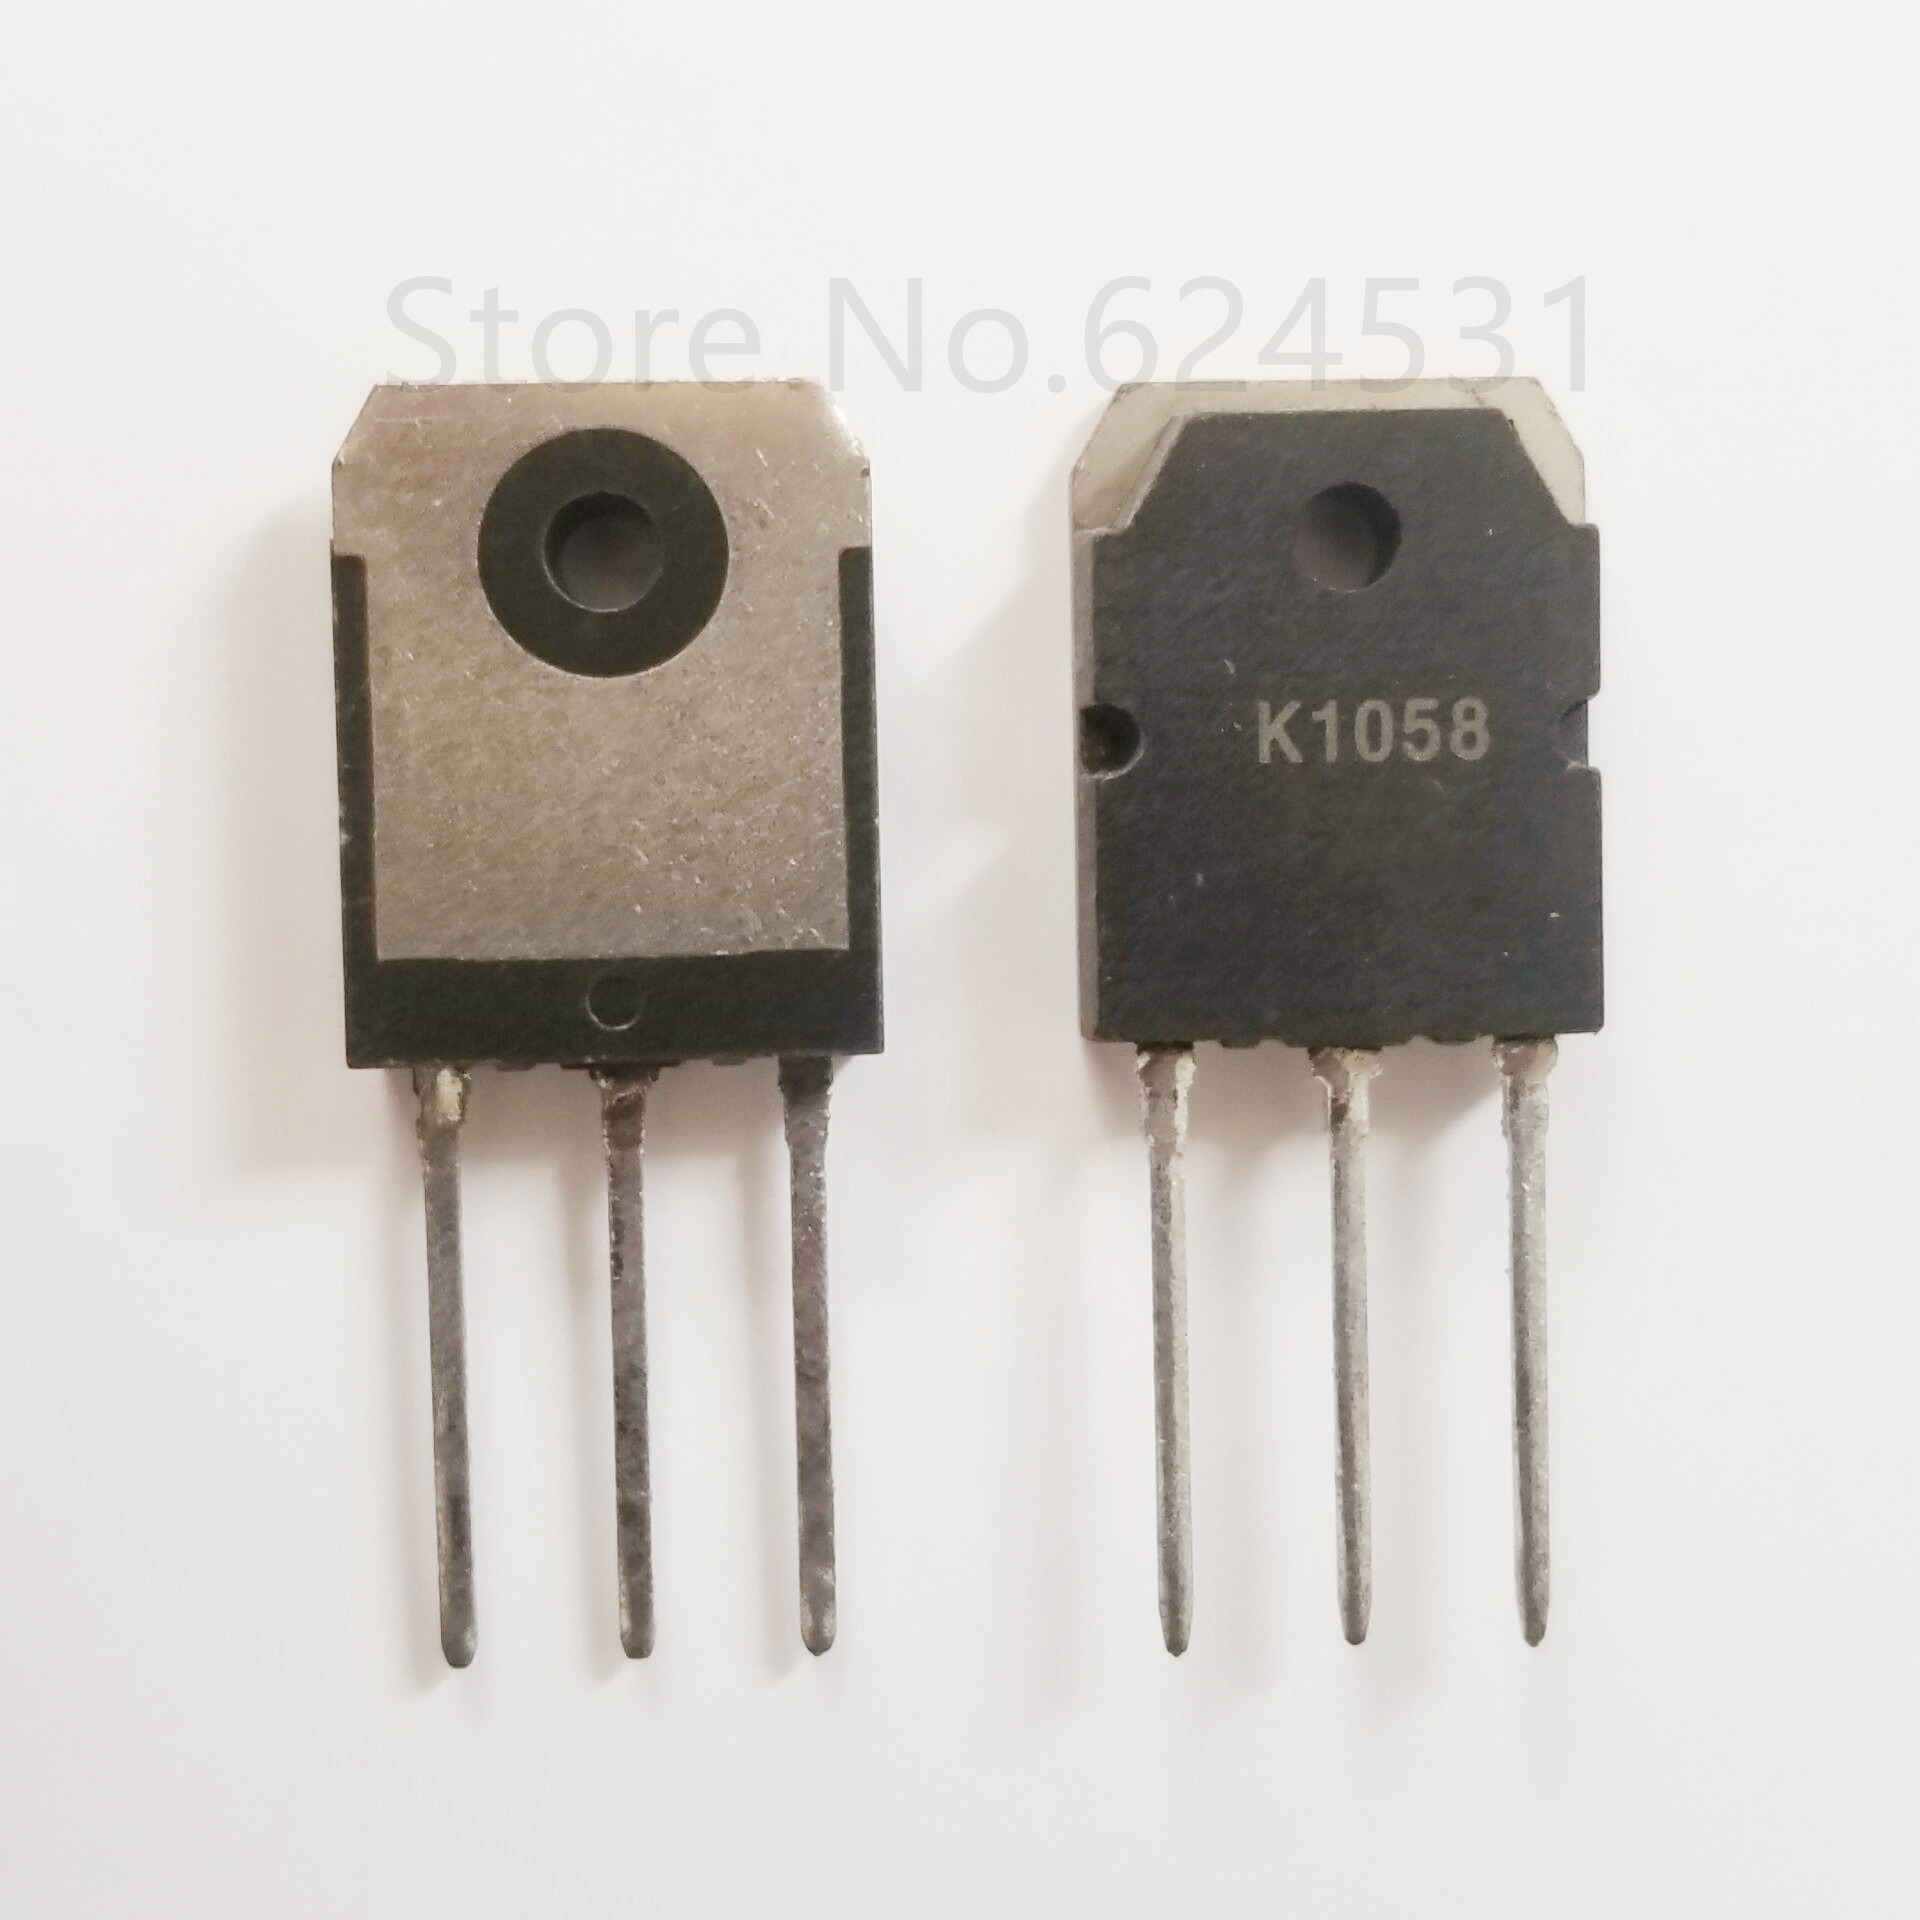 Hot spot 5pcs/lot 2SK1058 K1058 TO-3P in stock